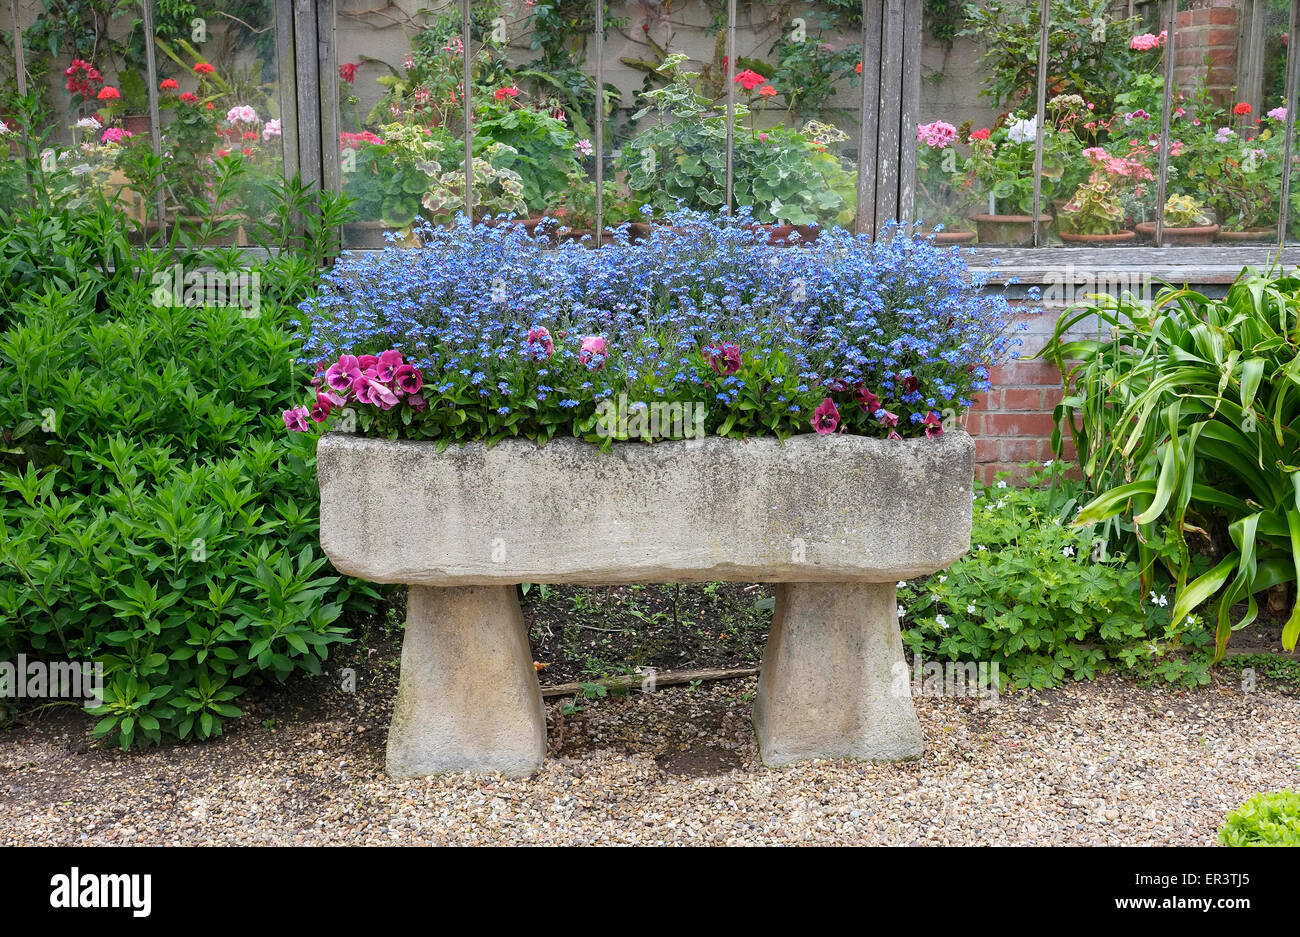 Plants In Old Stone Trough Garden Feature, Norfolk, England